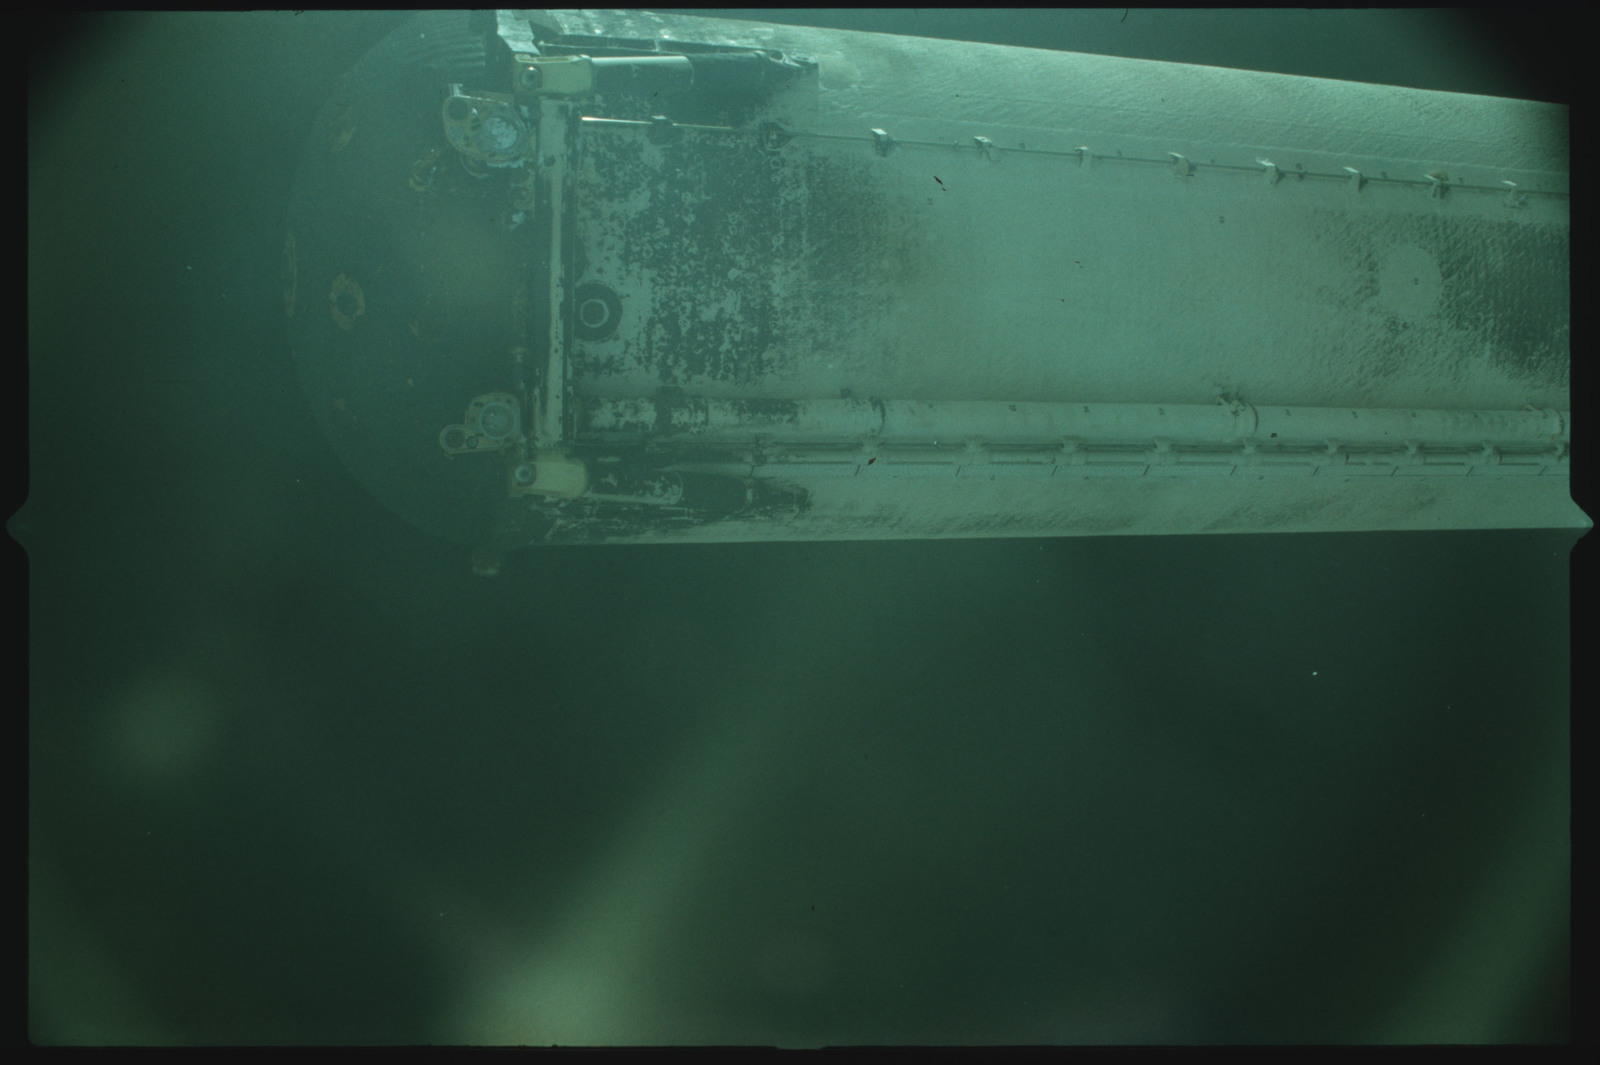 S02-500-944 - STS-002 - View of the External Tank after separation from Columbia during the STS-2 mission